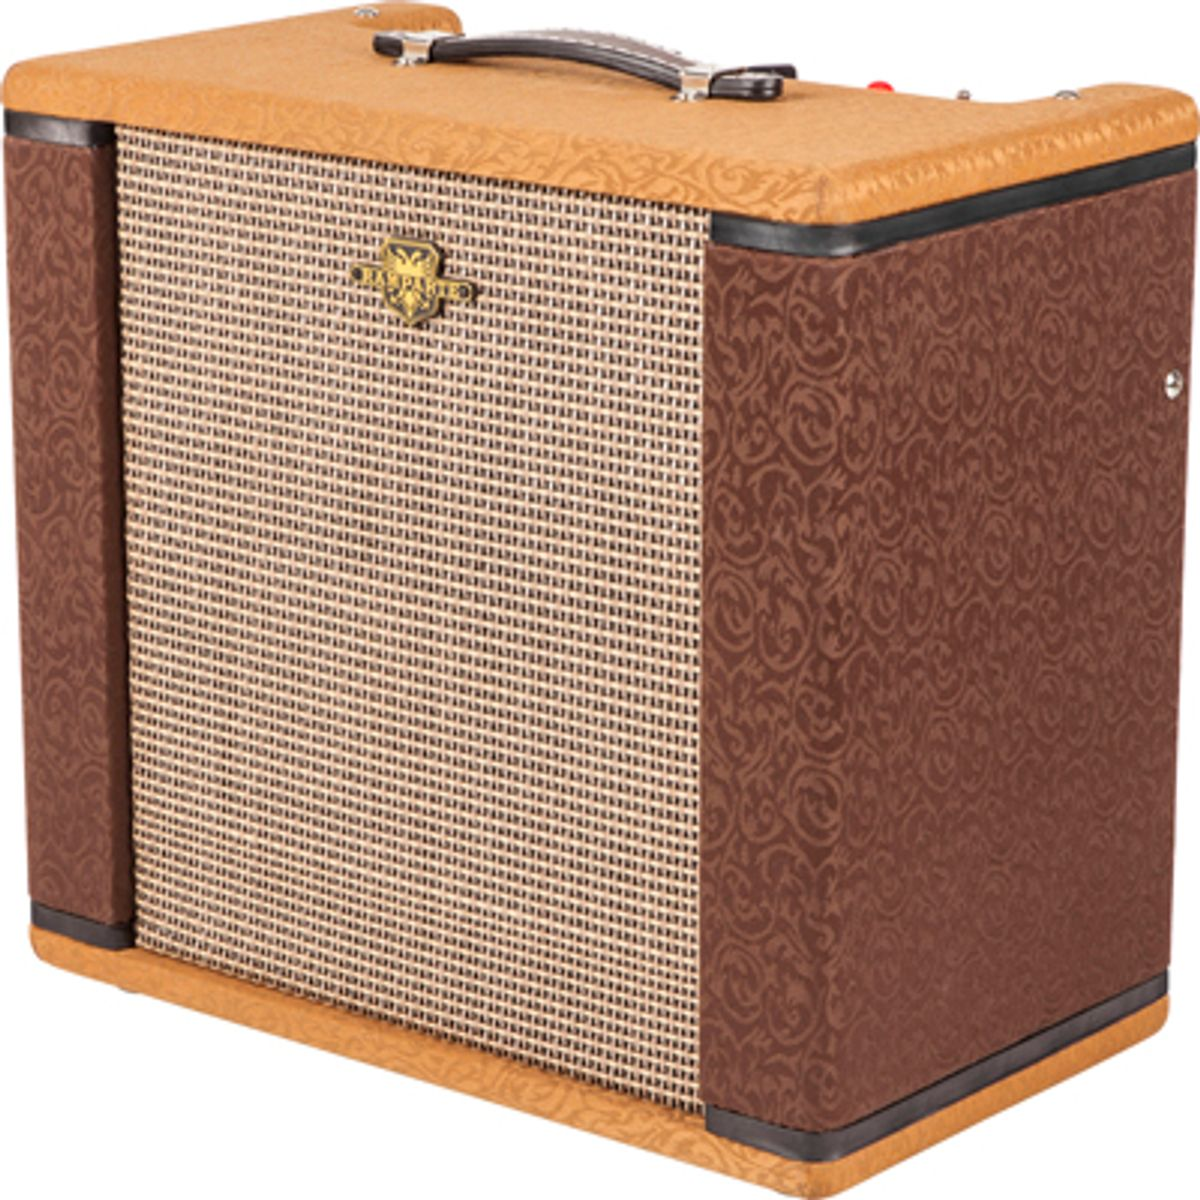 Fender Adds Ramparte to Pawn Shop Special Series of Amps